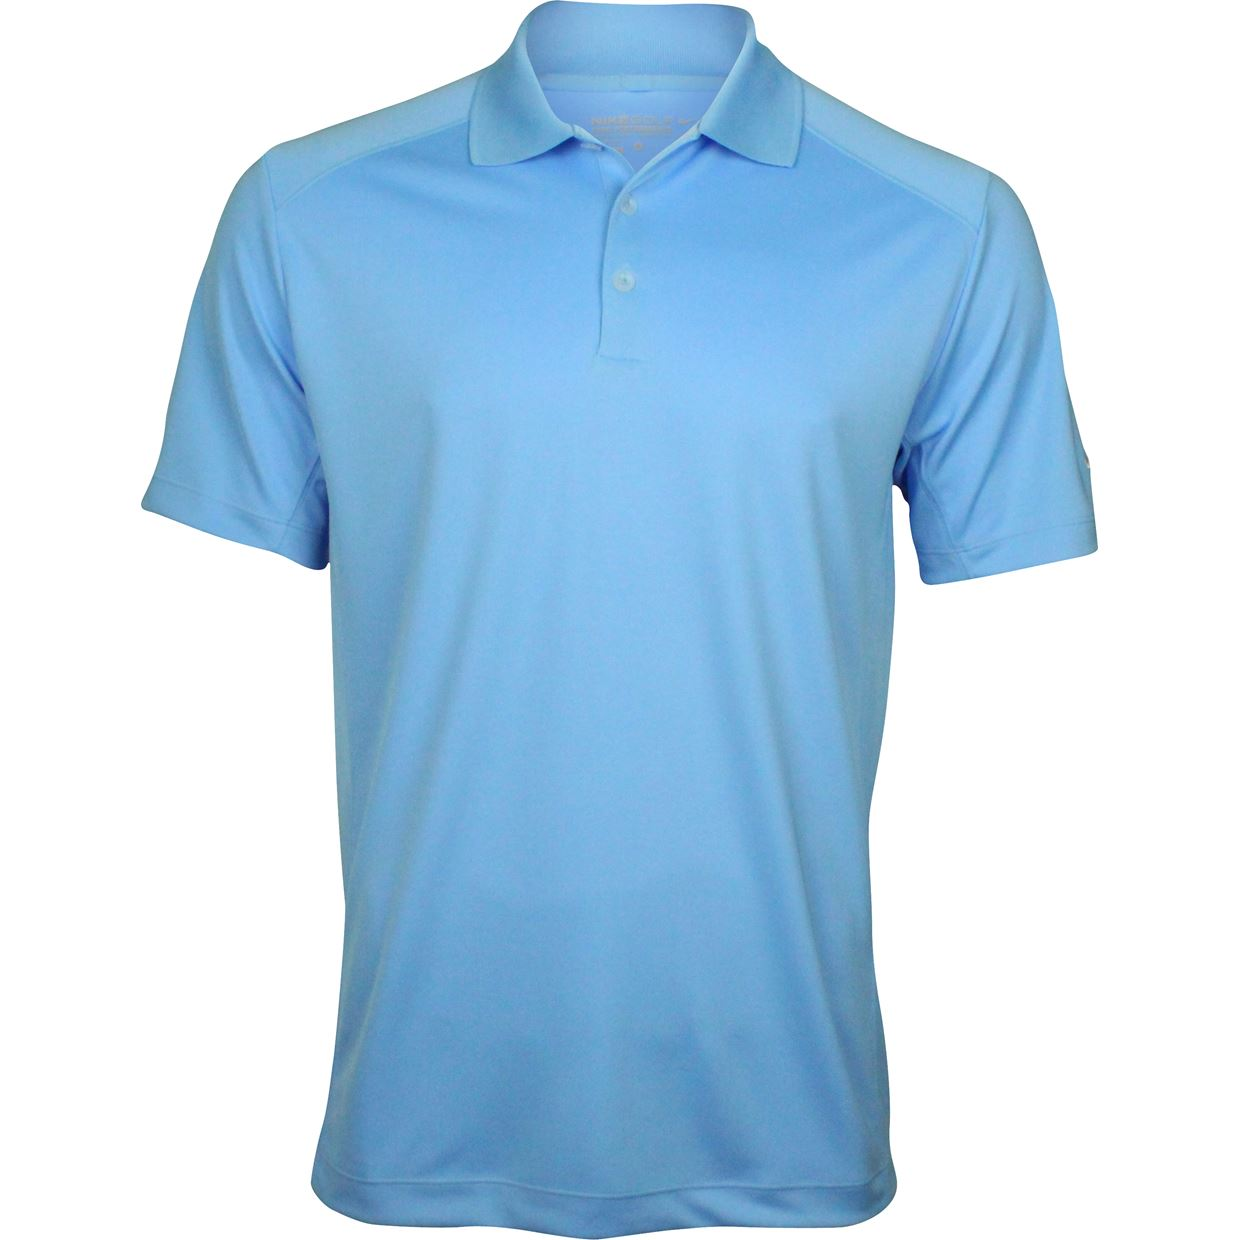 Nike dri fit victory polo shirt at for Nike dri fit victory golf shirts